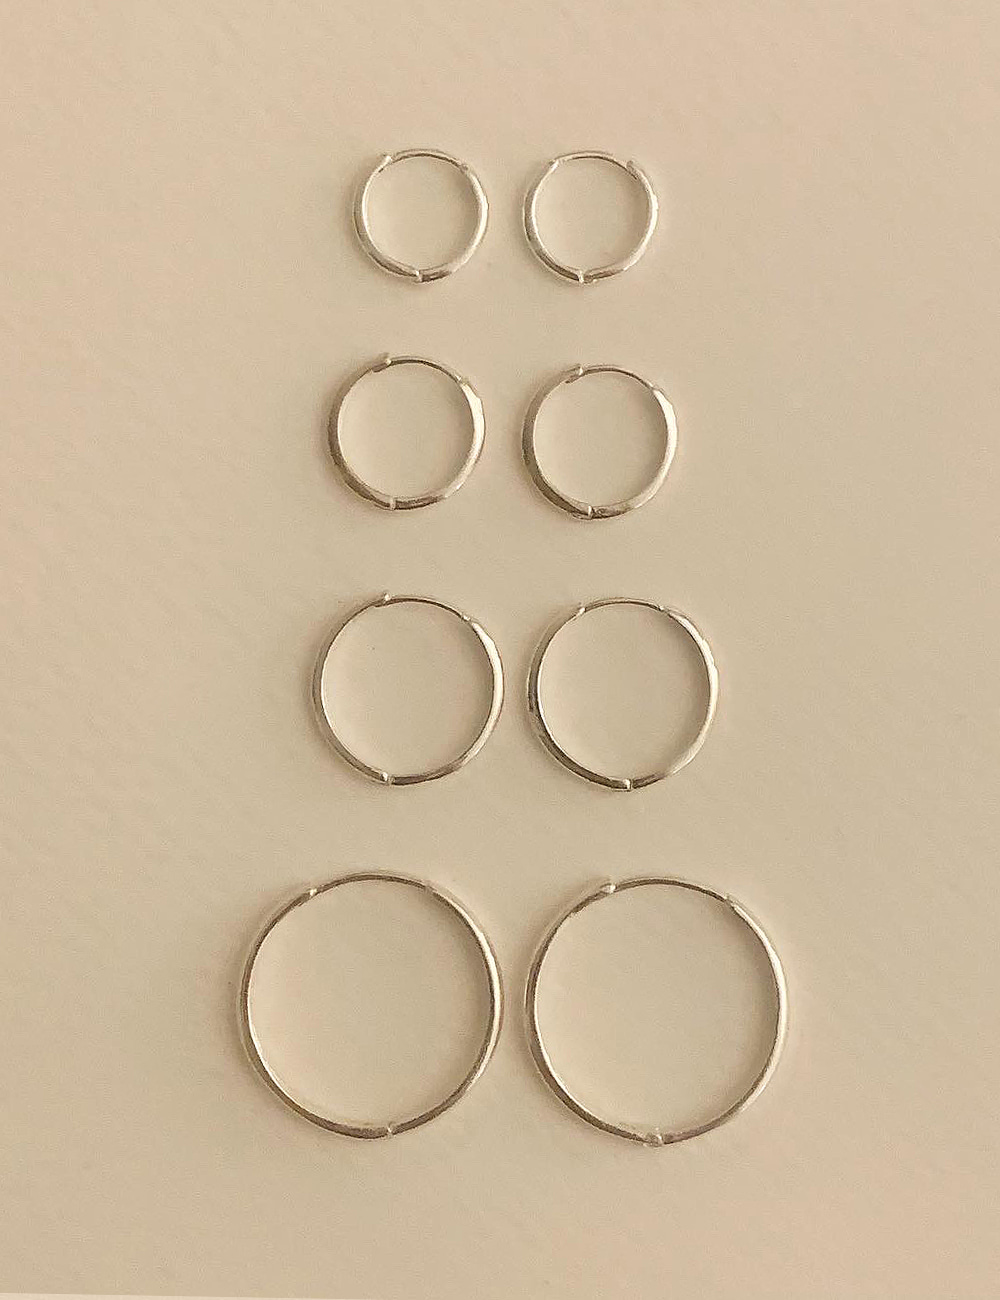 (silver 92.5) Daily ring earring